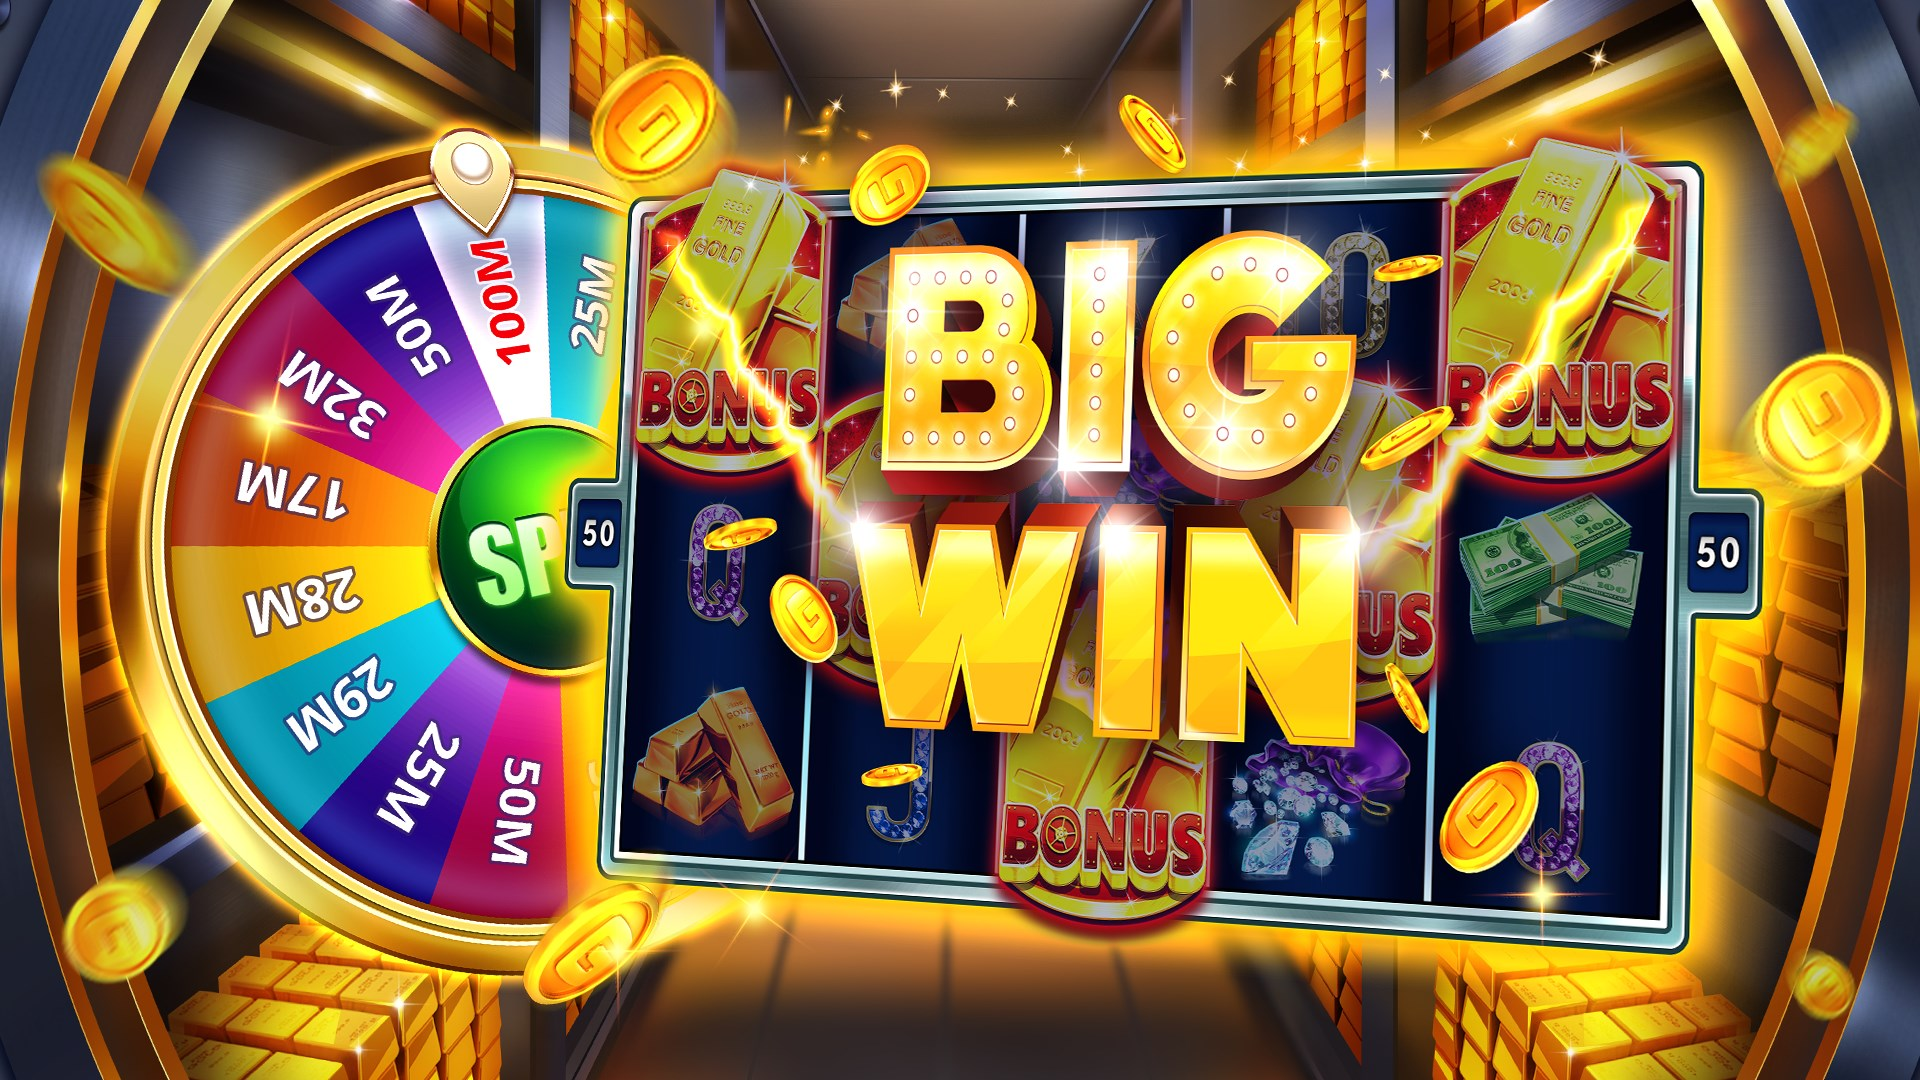 All Slots Casino Bonus